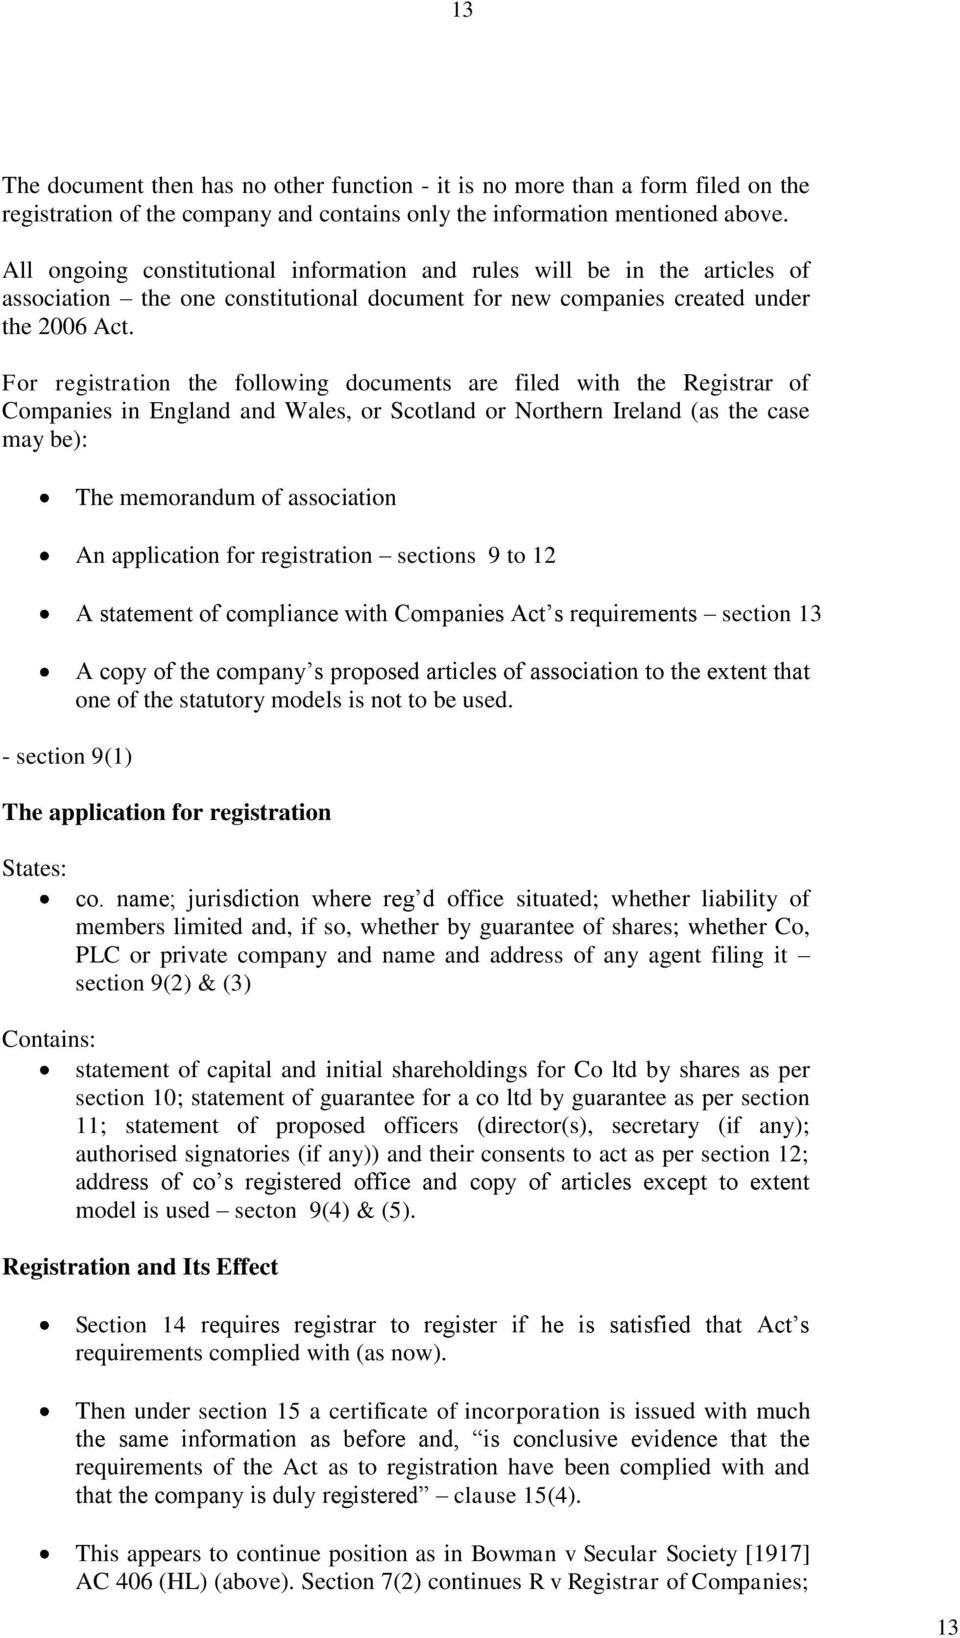 For registration the following documents are filed with the Registrar of Companies in England and Wales, or Scotland or Northern Ireland (as the case may be): - section 9(1) The memorandum of